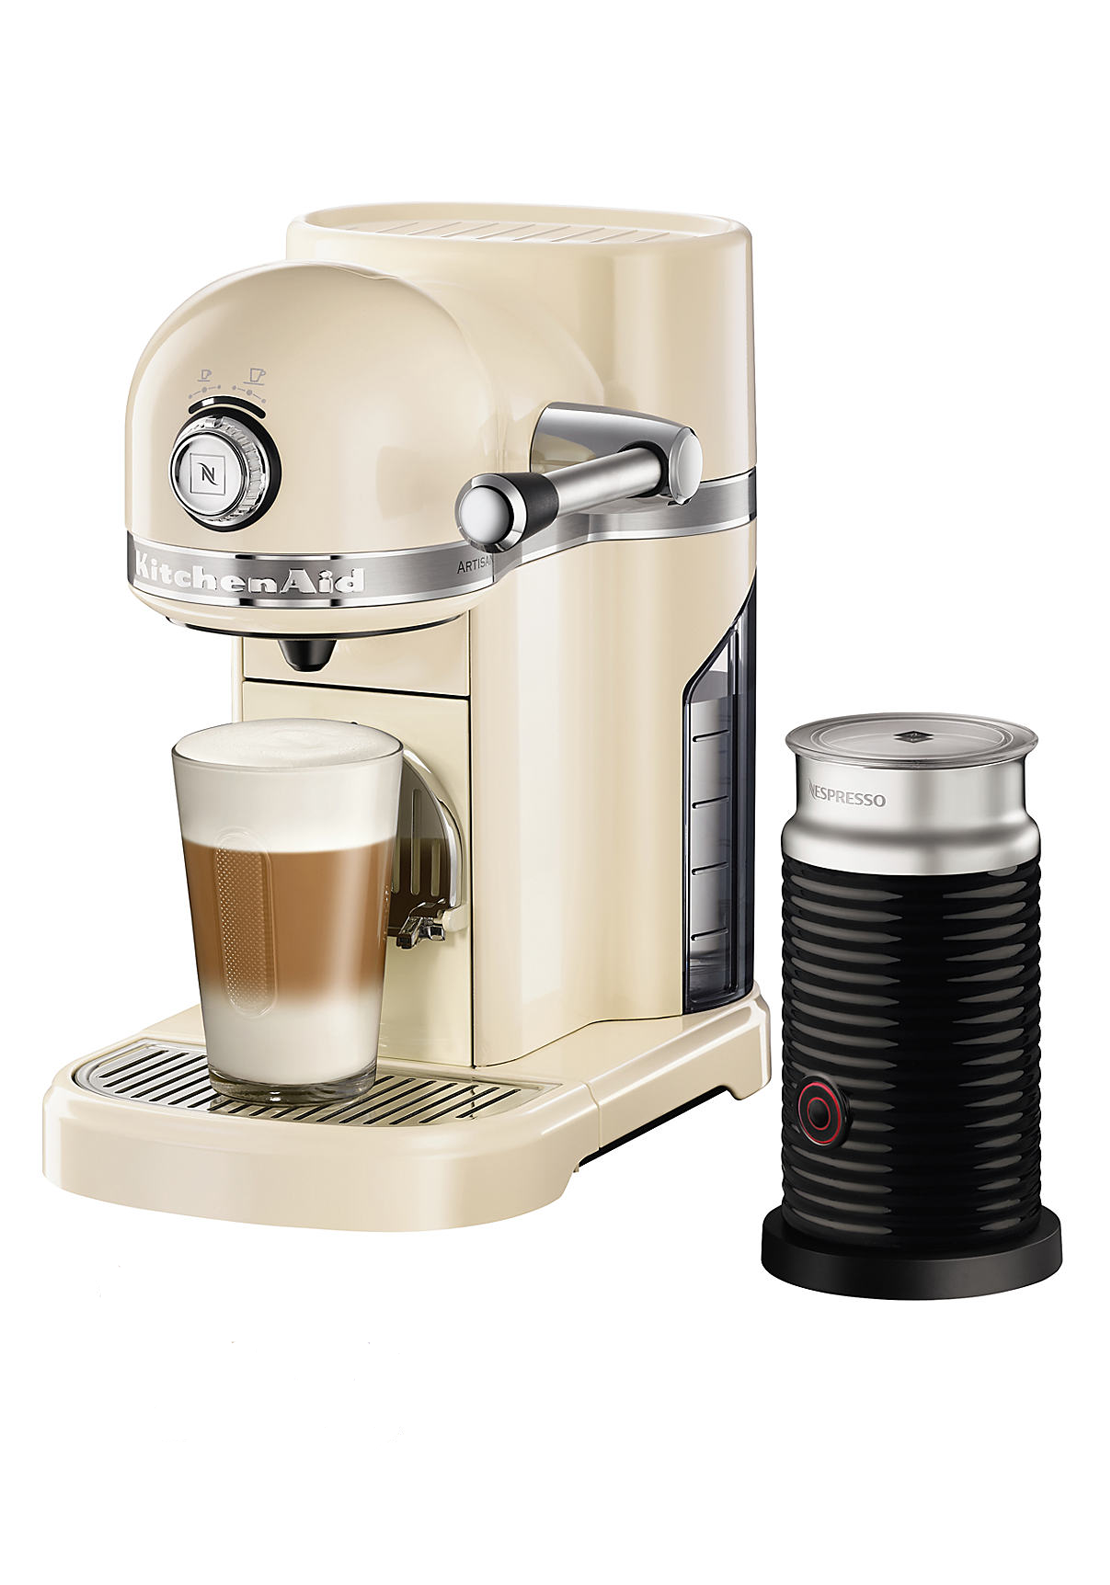 Nespresso KitchenAid Coffee Machine with Aeroccino, Almond Cream